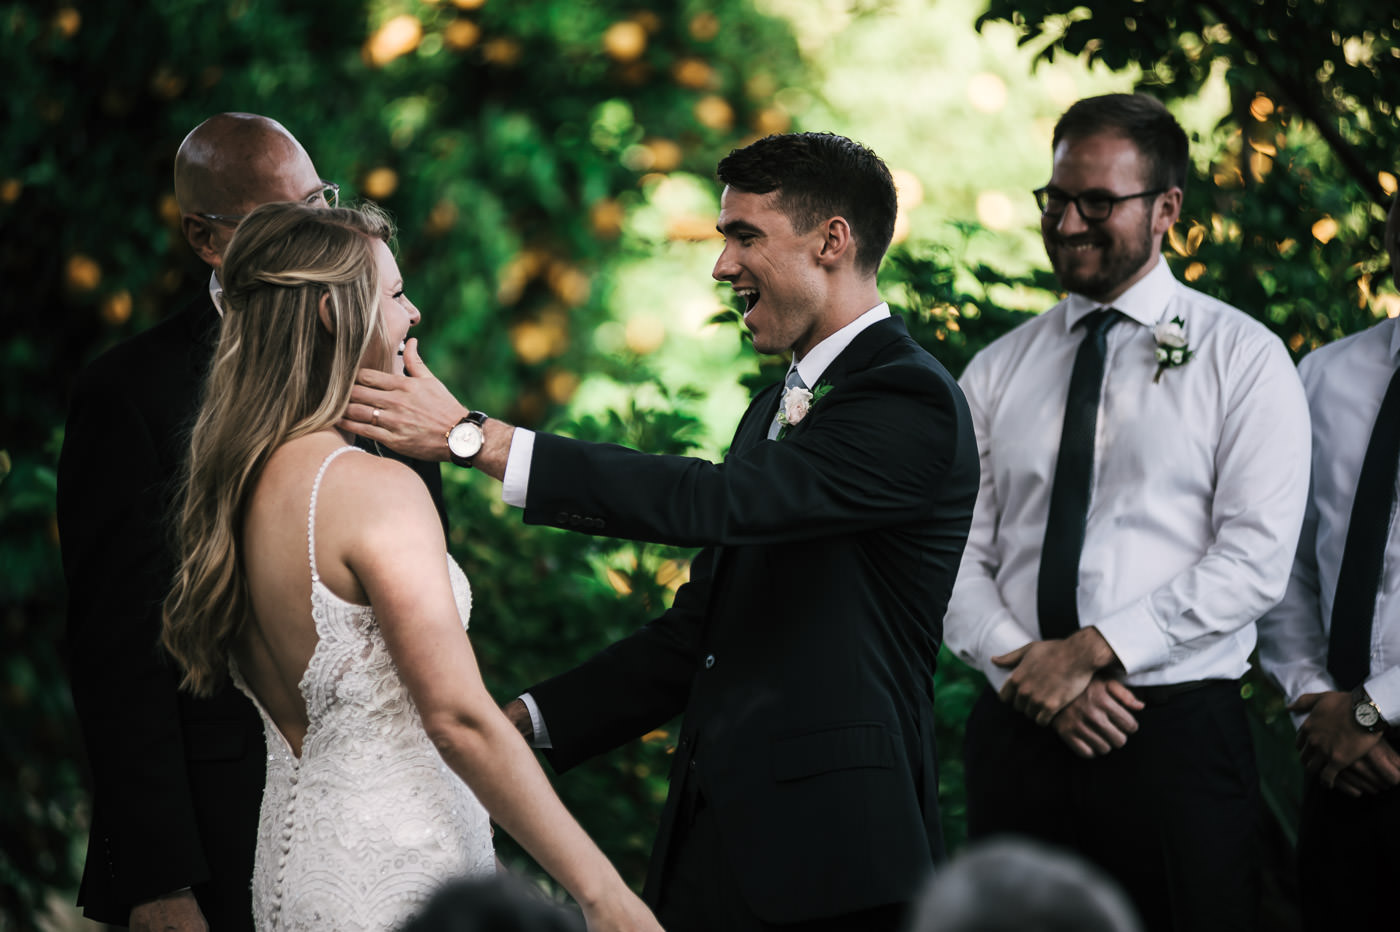 Take a look at these two's absolute joy as they prepare to have their first kiss as husband and wife. The orange orchard behind makes the perfect backdrop for this Temecula Wedding.